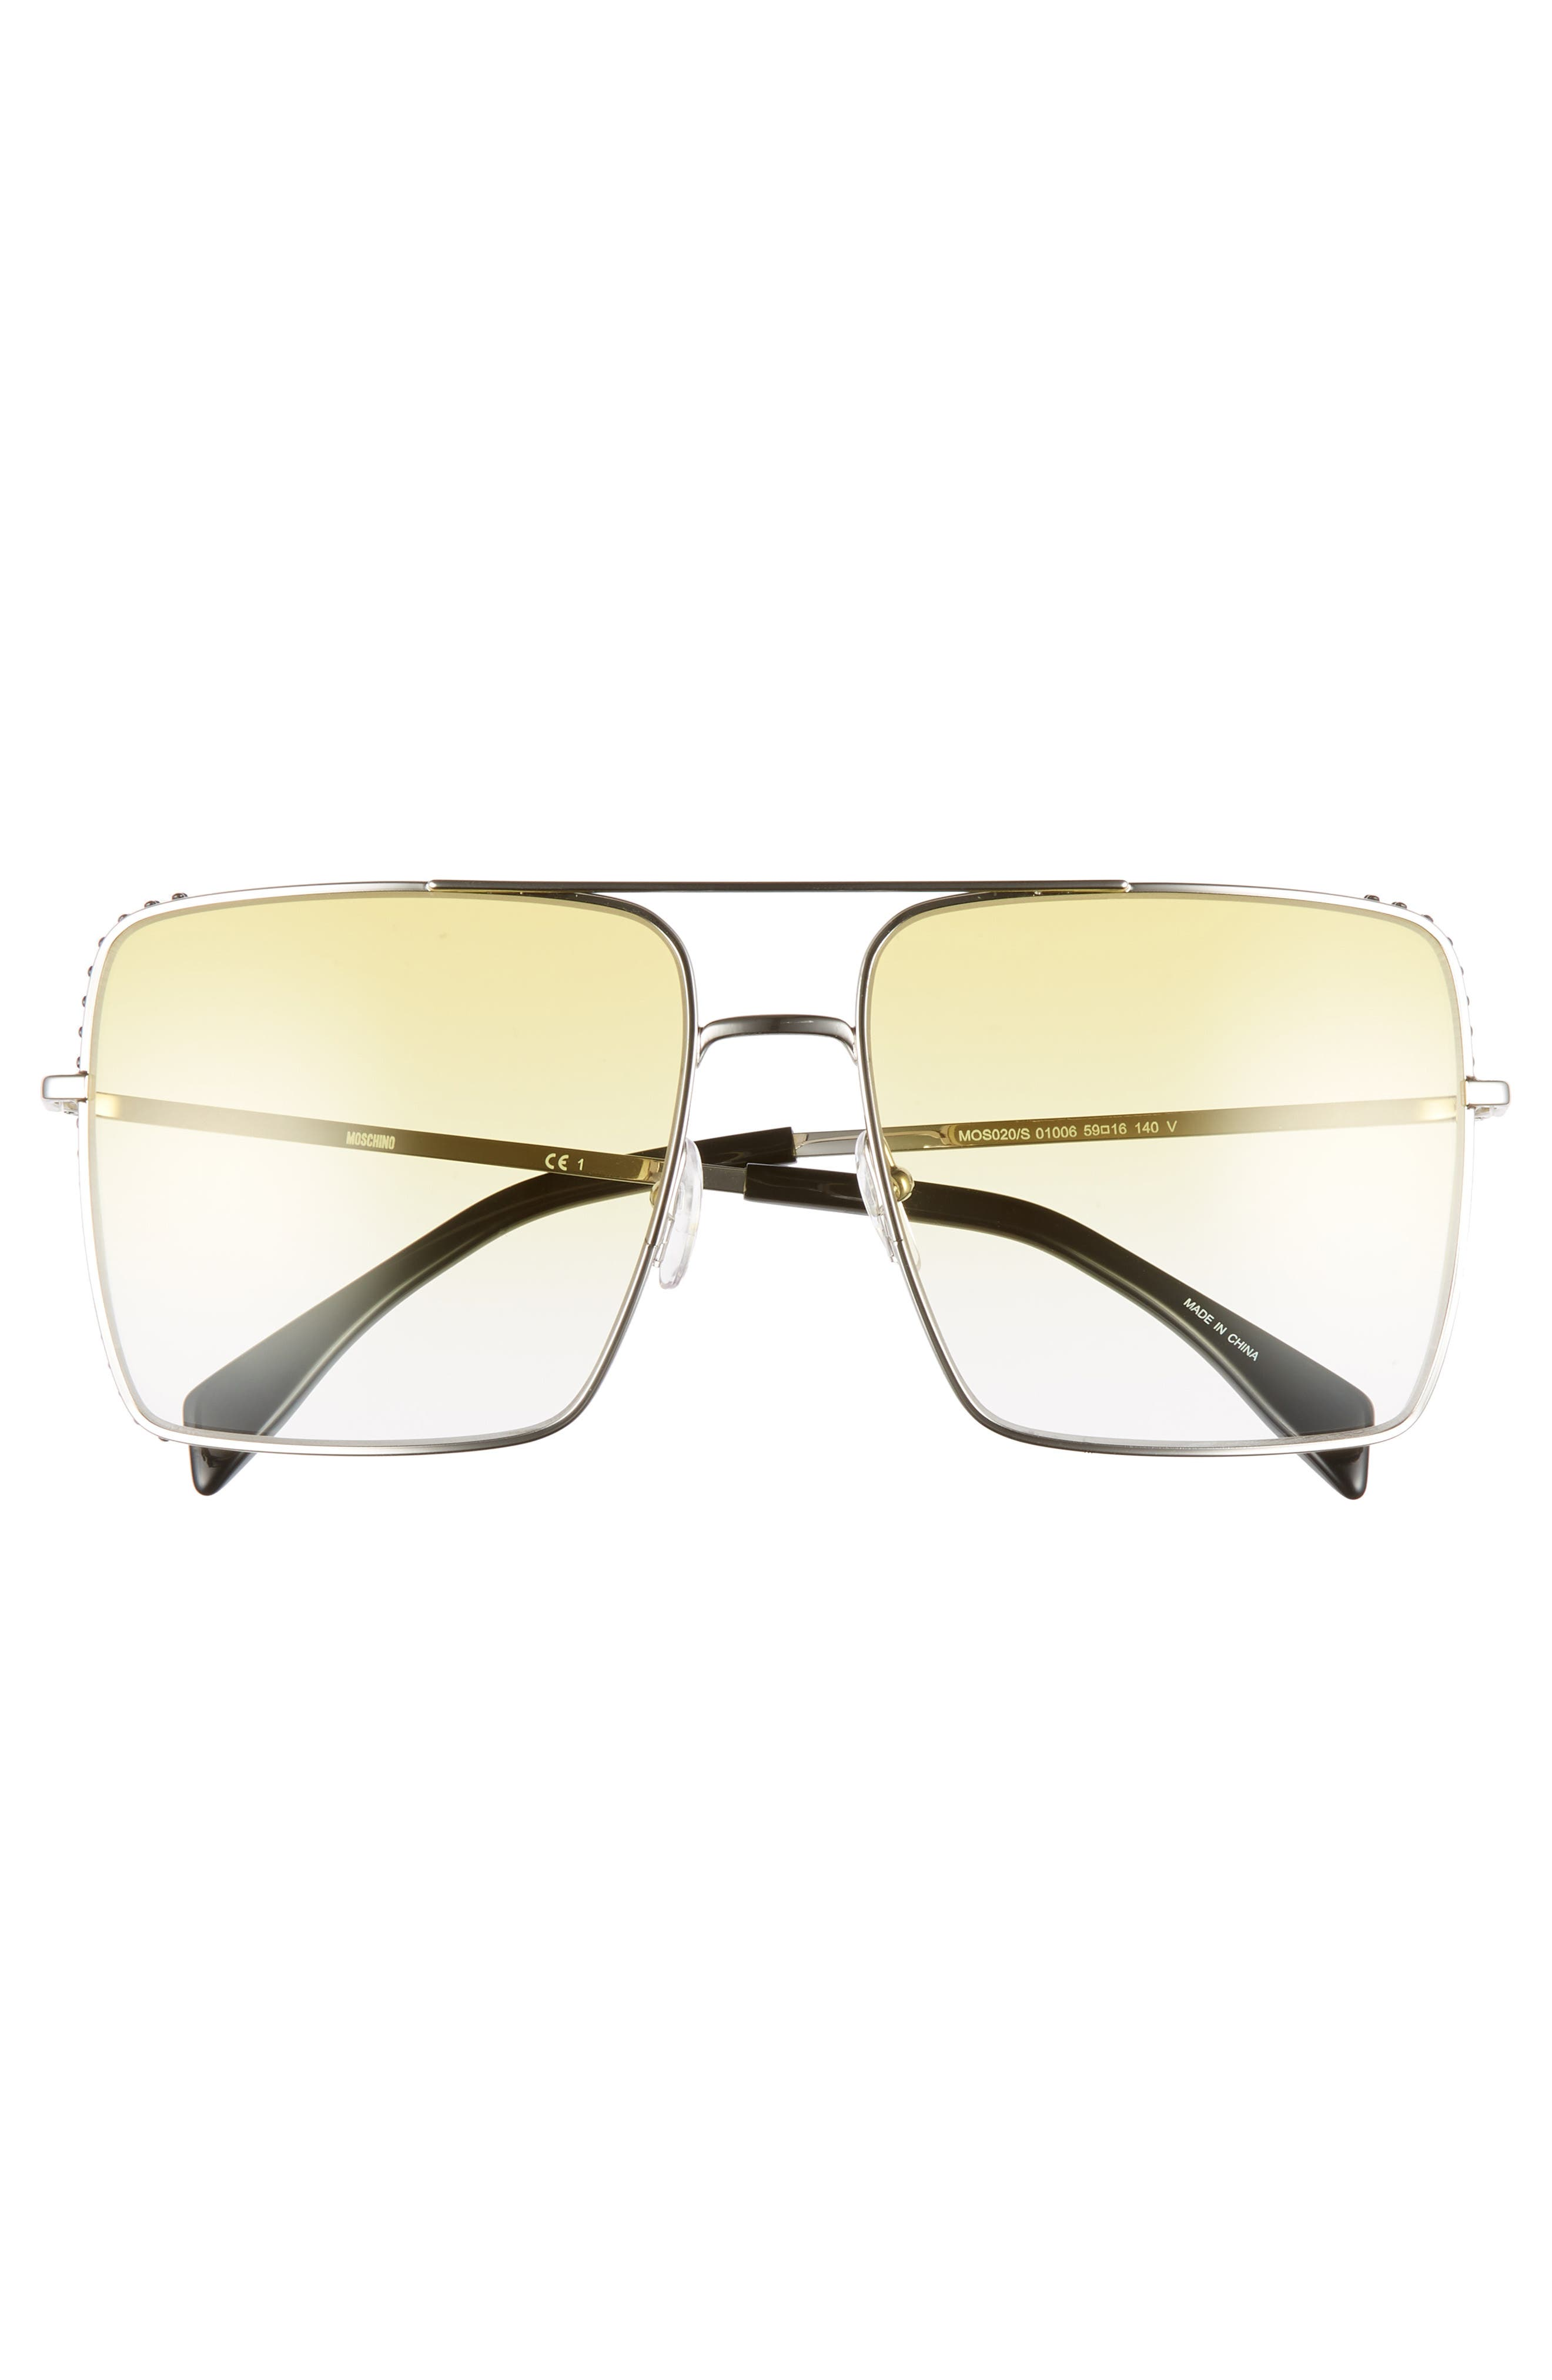 MOSCHINO, 50mm Square Flat Top Sunglasses, Alternate thumbnail 3, color, PALLADIUM